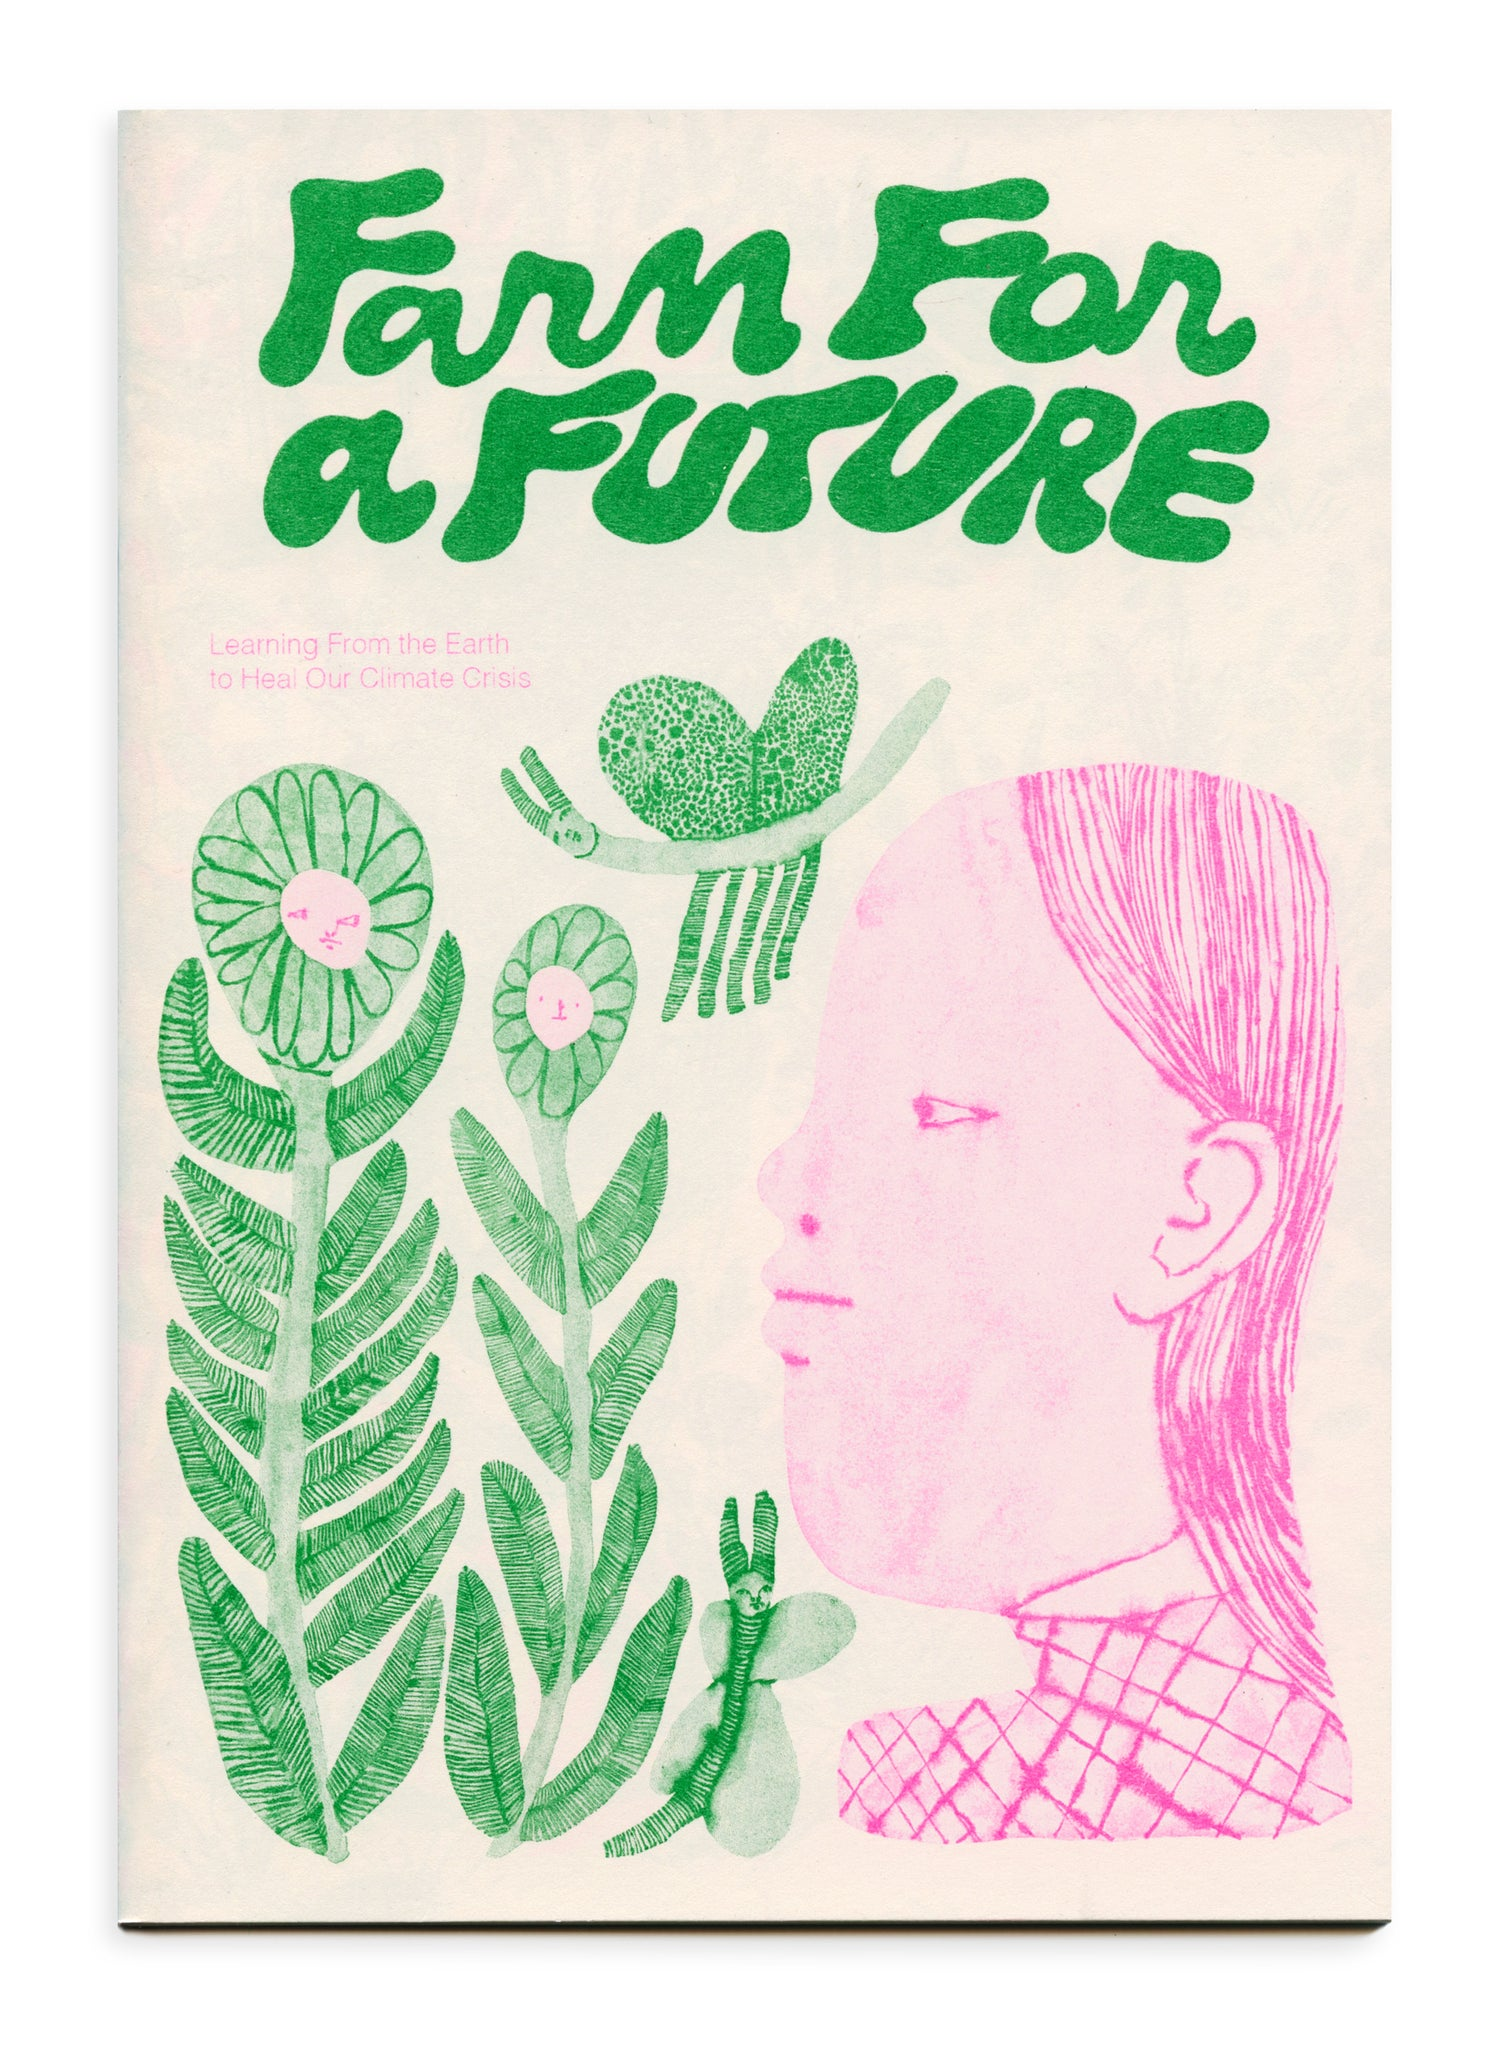 Image of Farm For a Future: Learning From the Earth to Heal Our Climate Crisis